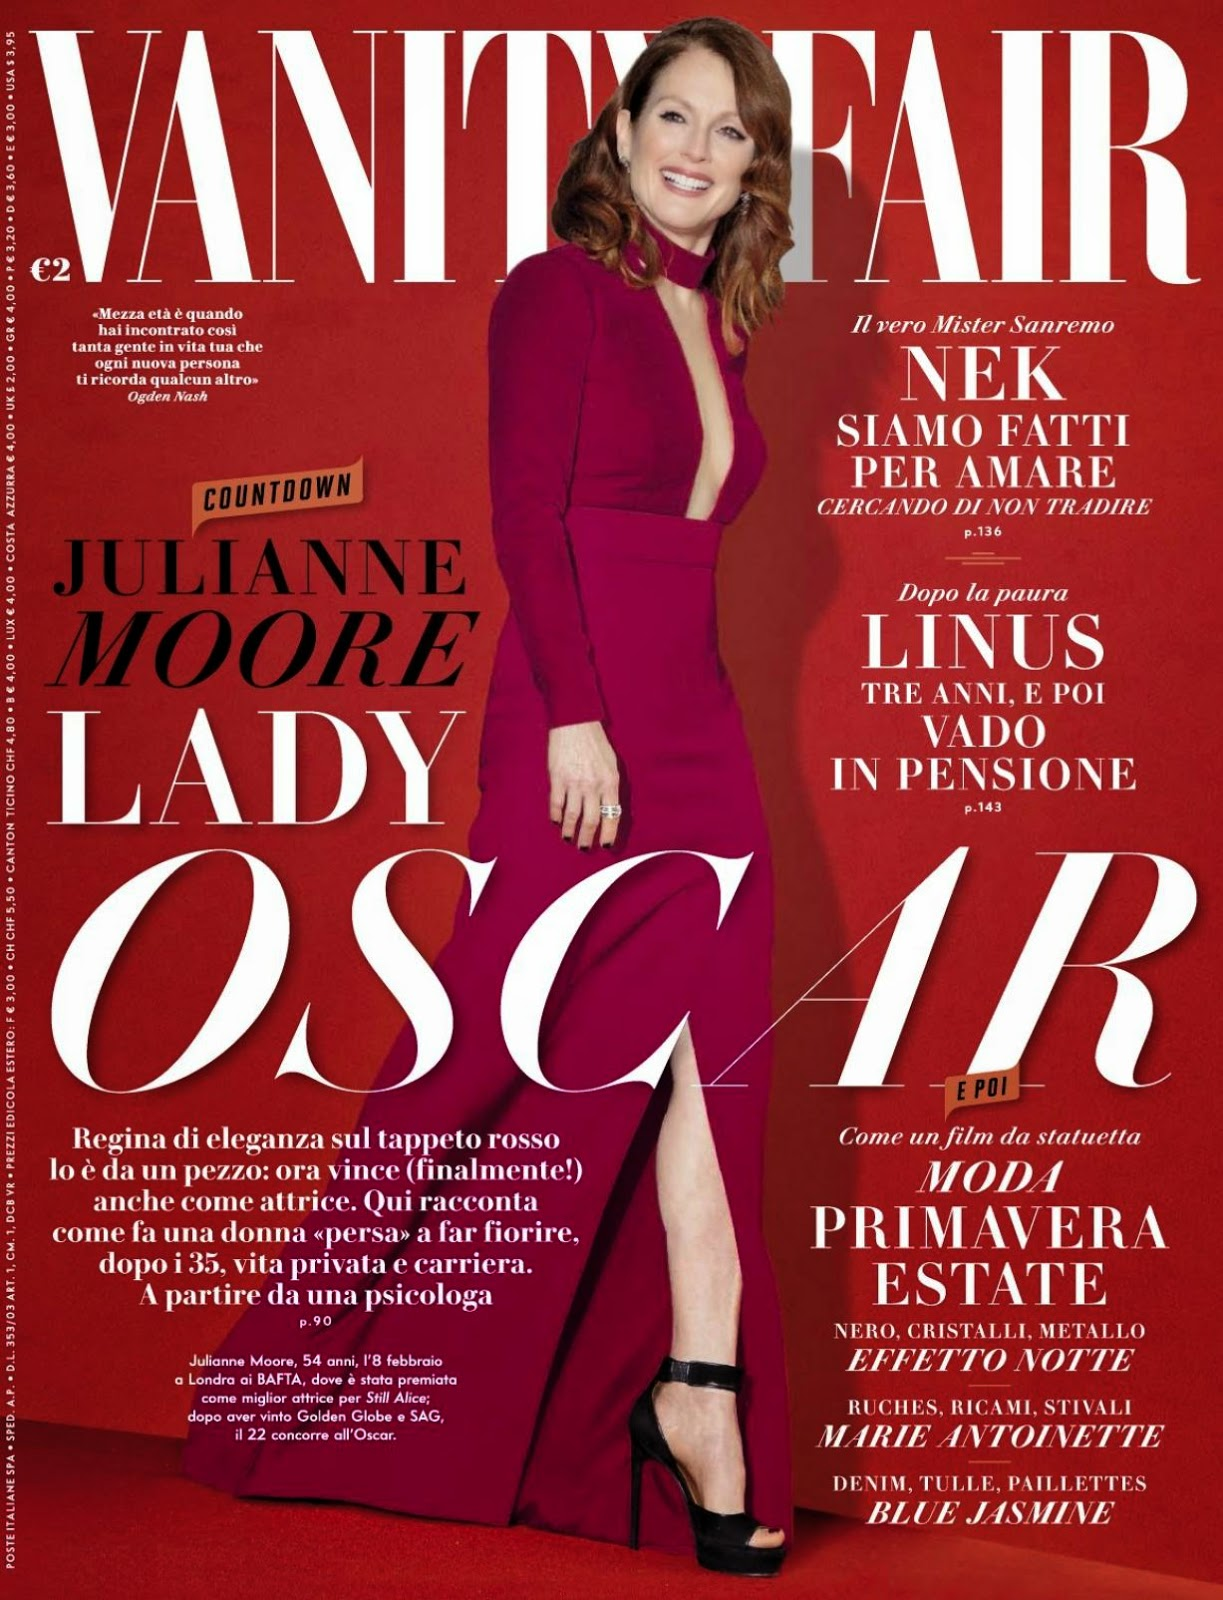 Actress: Julianne Moore - Vanity Fair Italy, February 2015